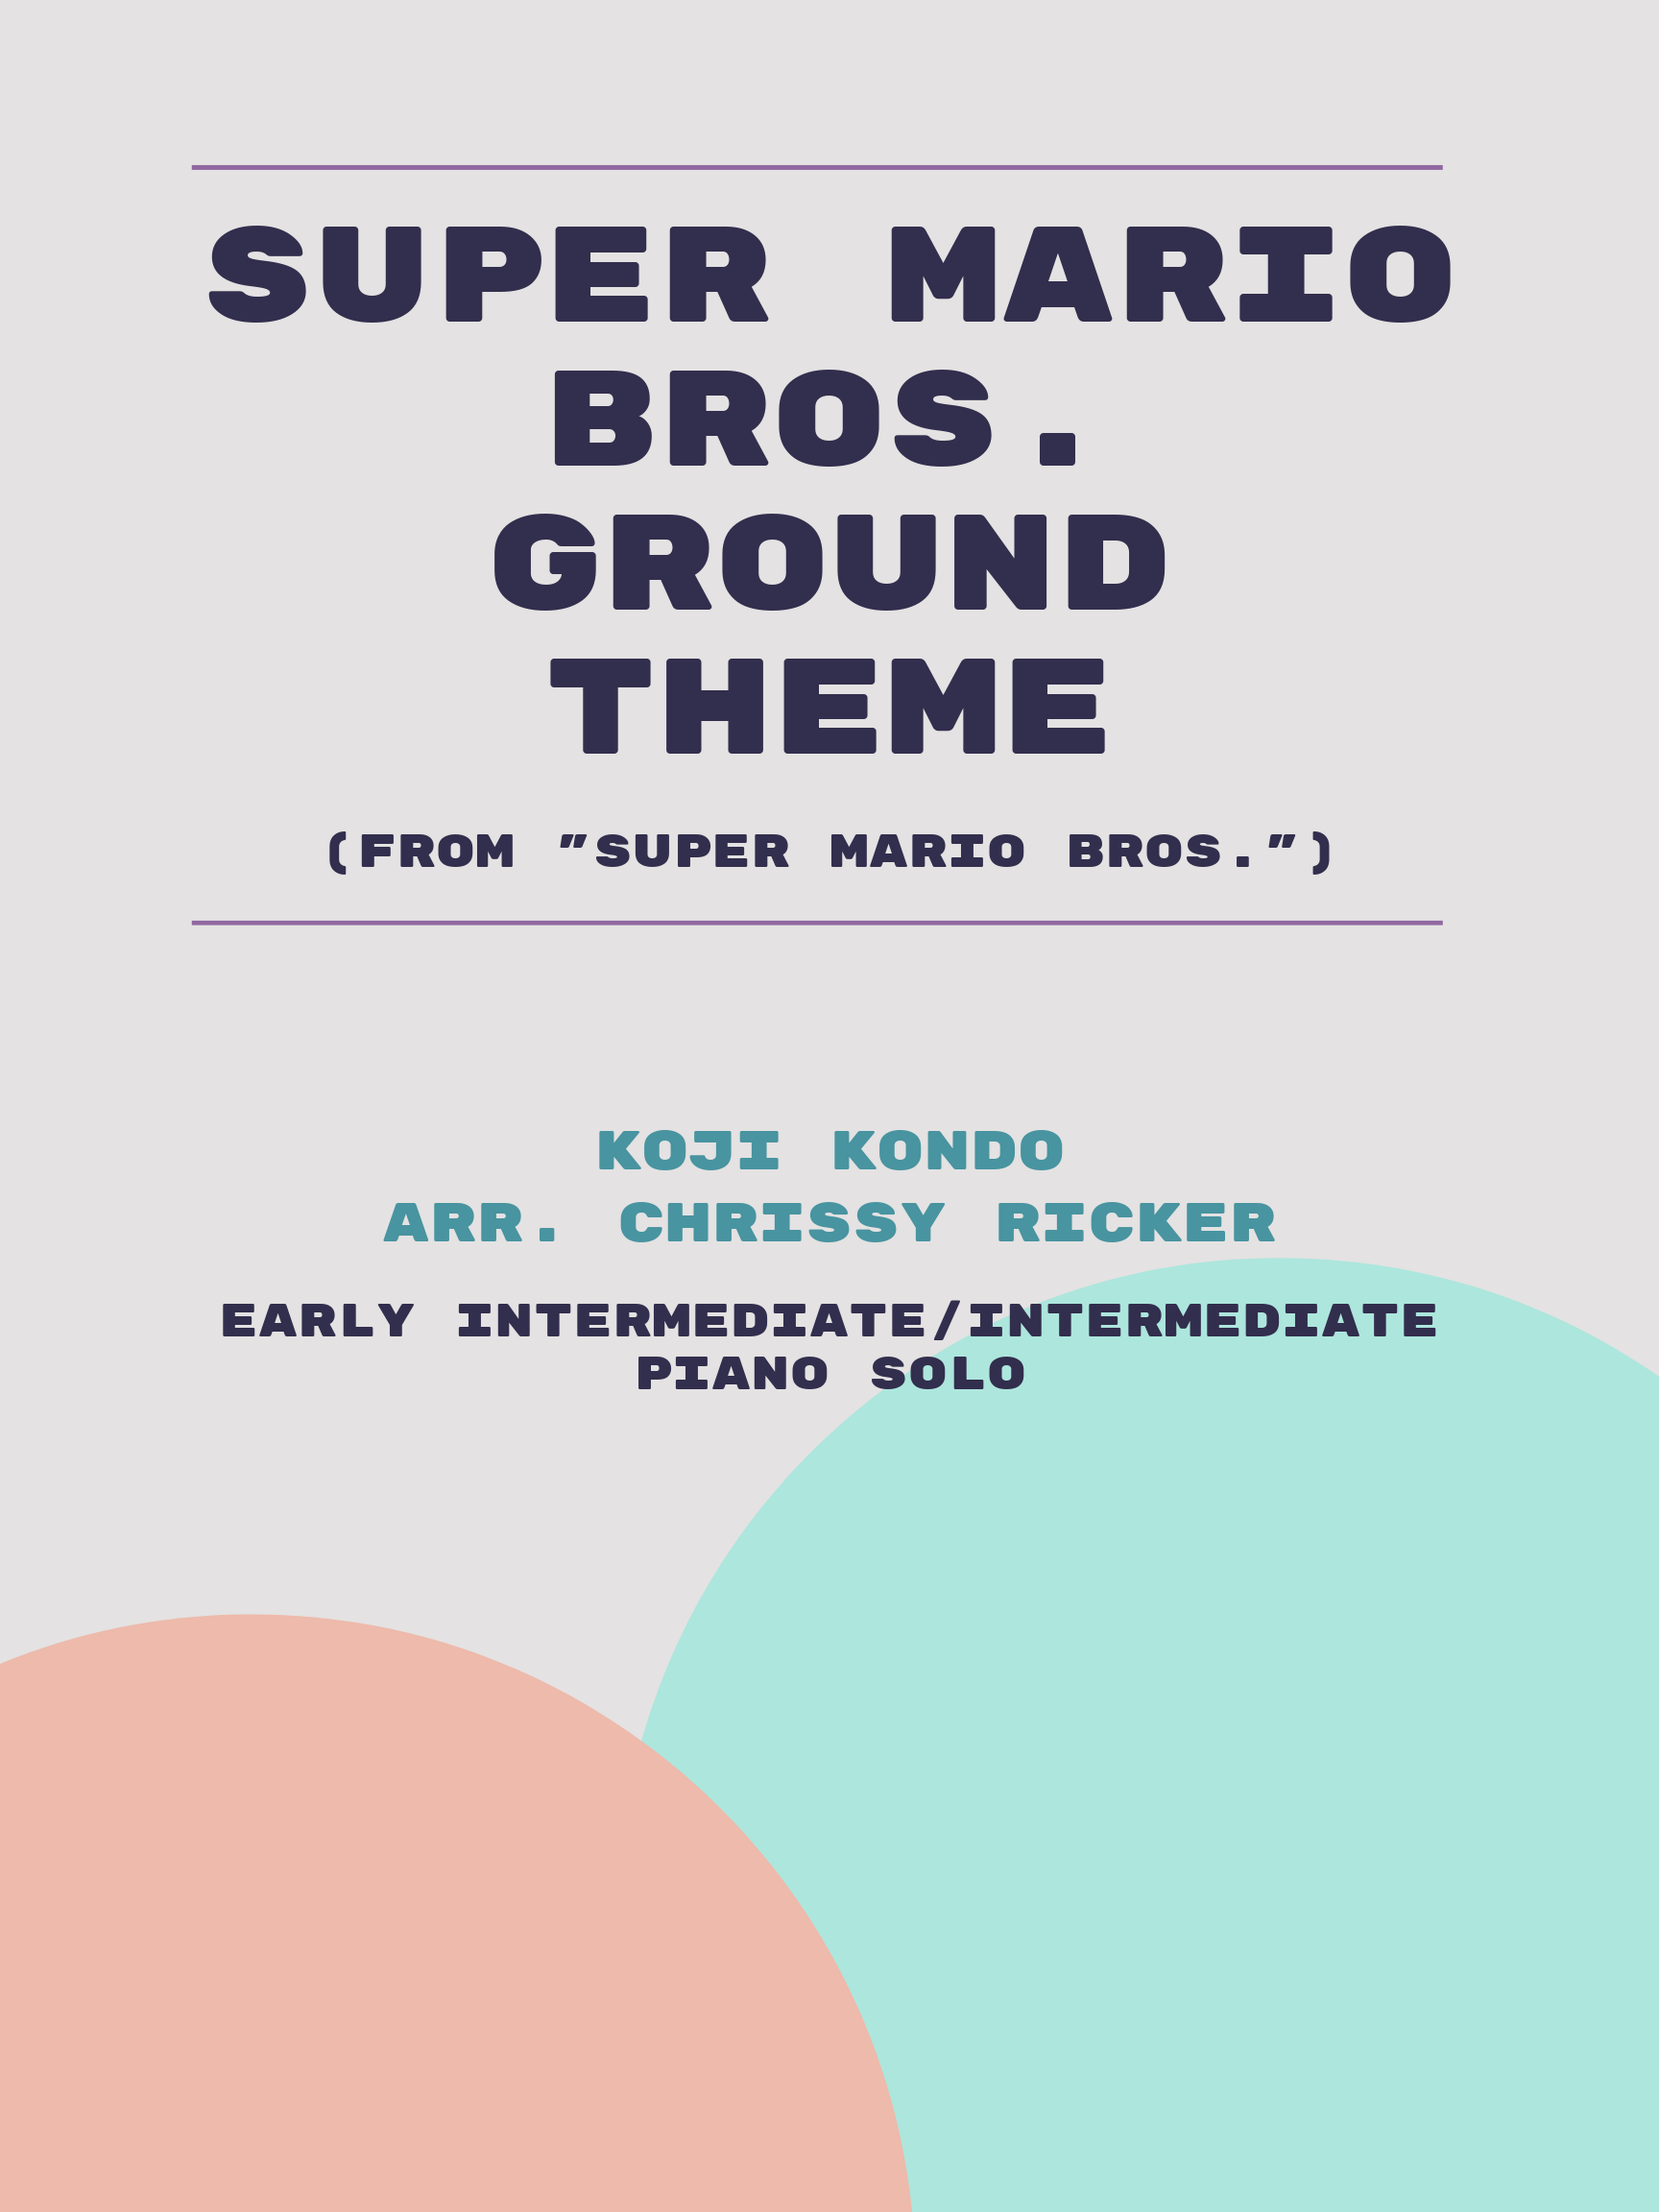 Super Mario Bros. Ground Theme by Koji Kondo